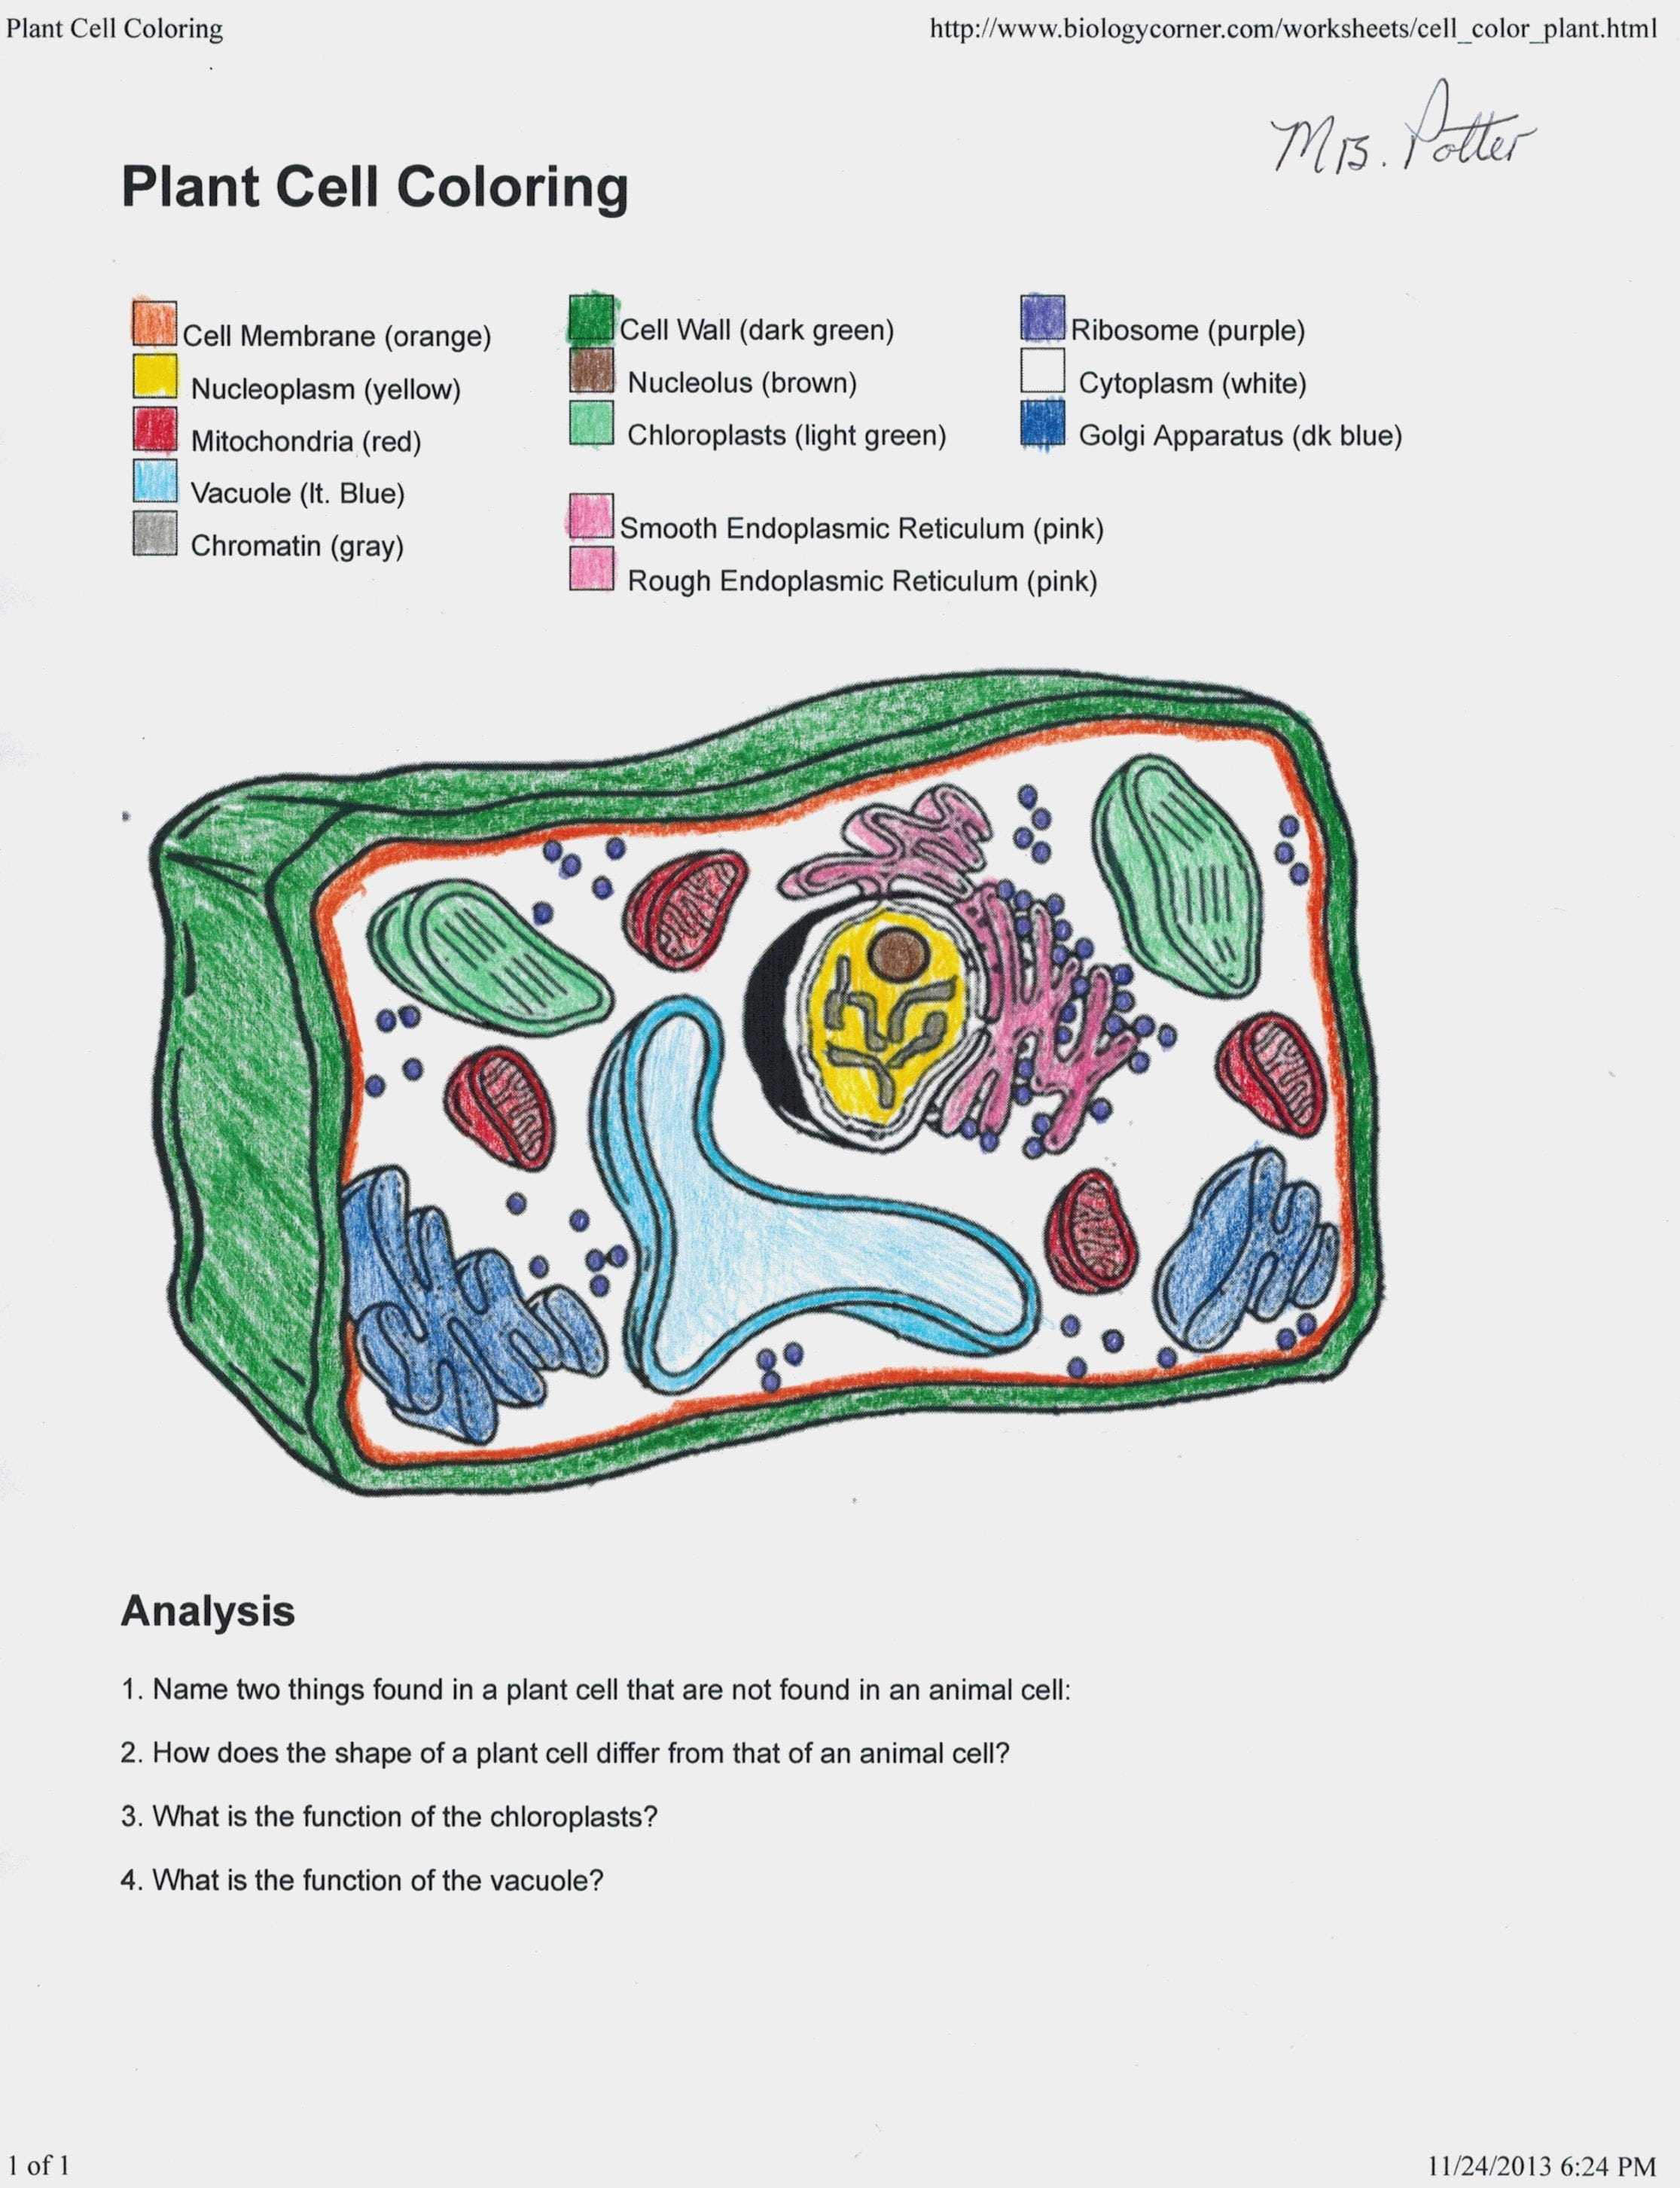 Animal Plant Cell Coloring Worksheet Key